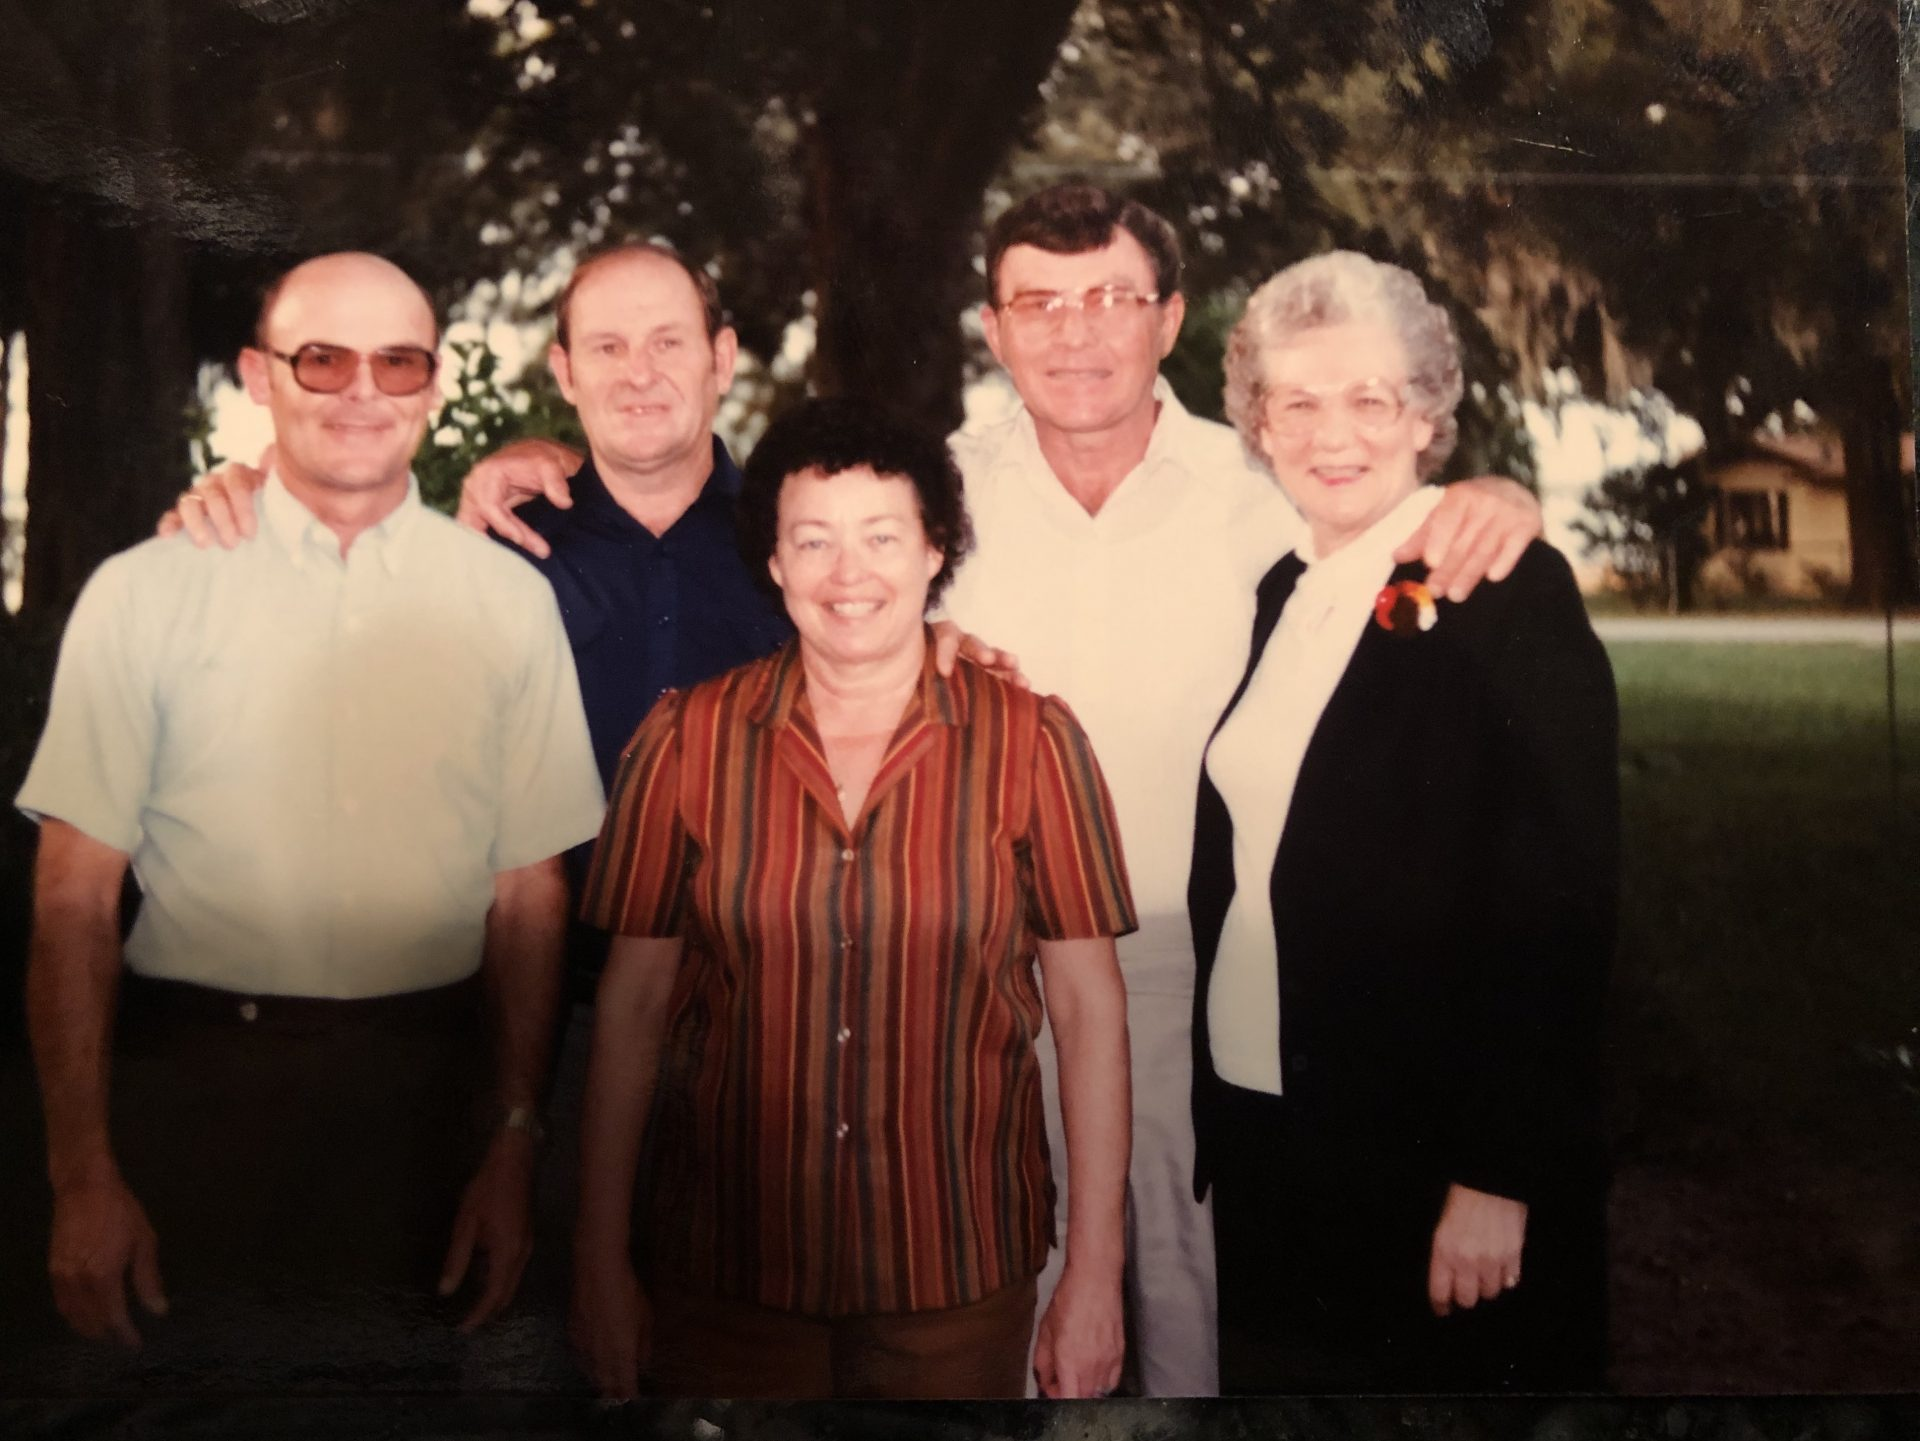 Gastfield Thanksgiving 1983.<br /> Penny with brothers Butch and Buzzy, sister Sarah and cousin Ruth.